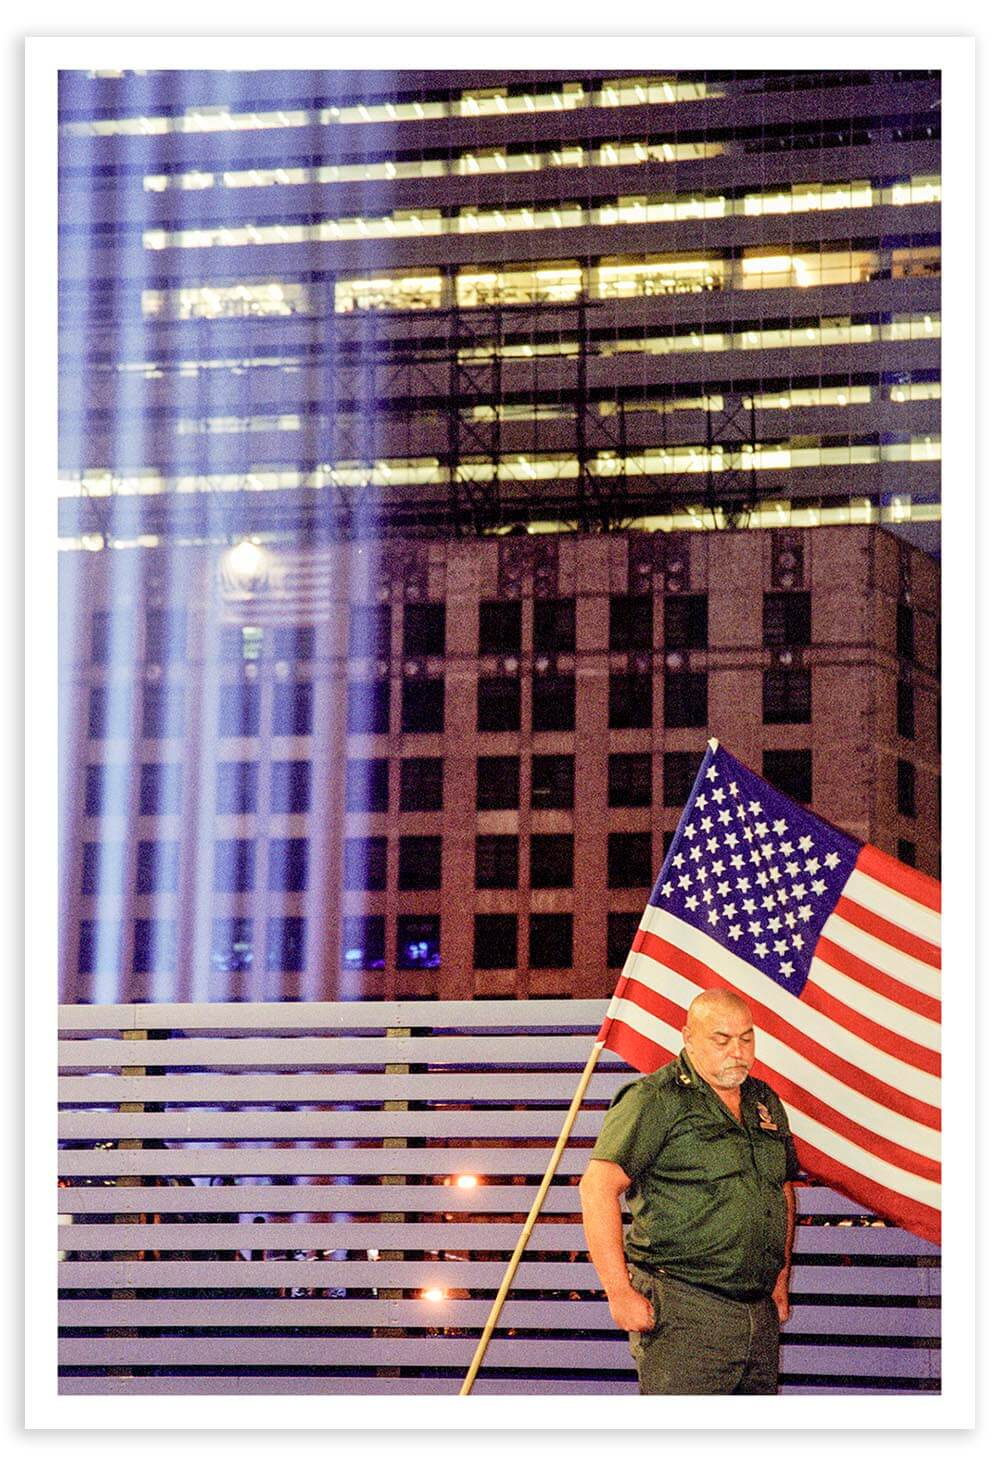 Photographed on Sept. 11, 2004.